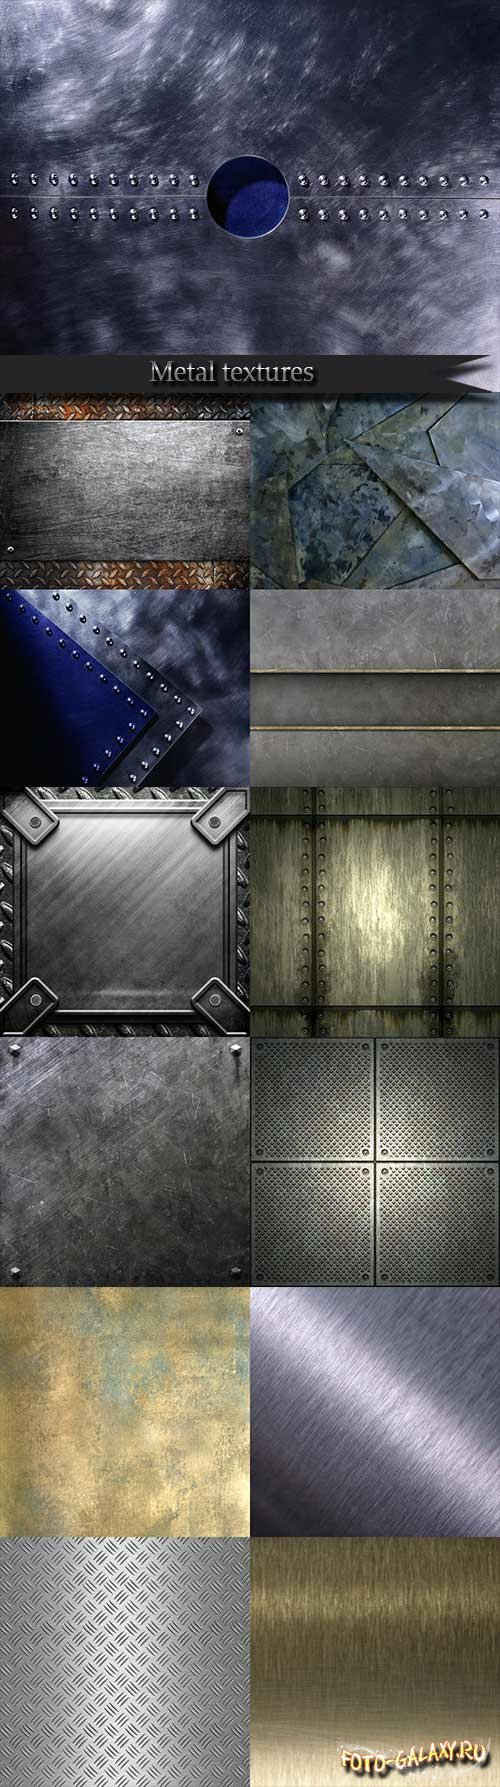 Metal textures for design